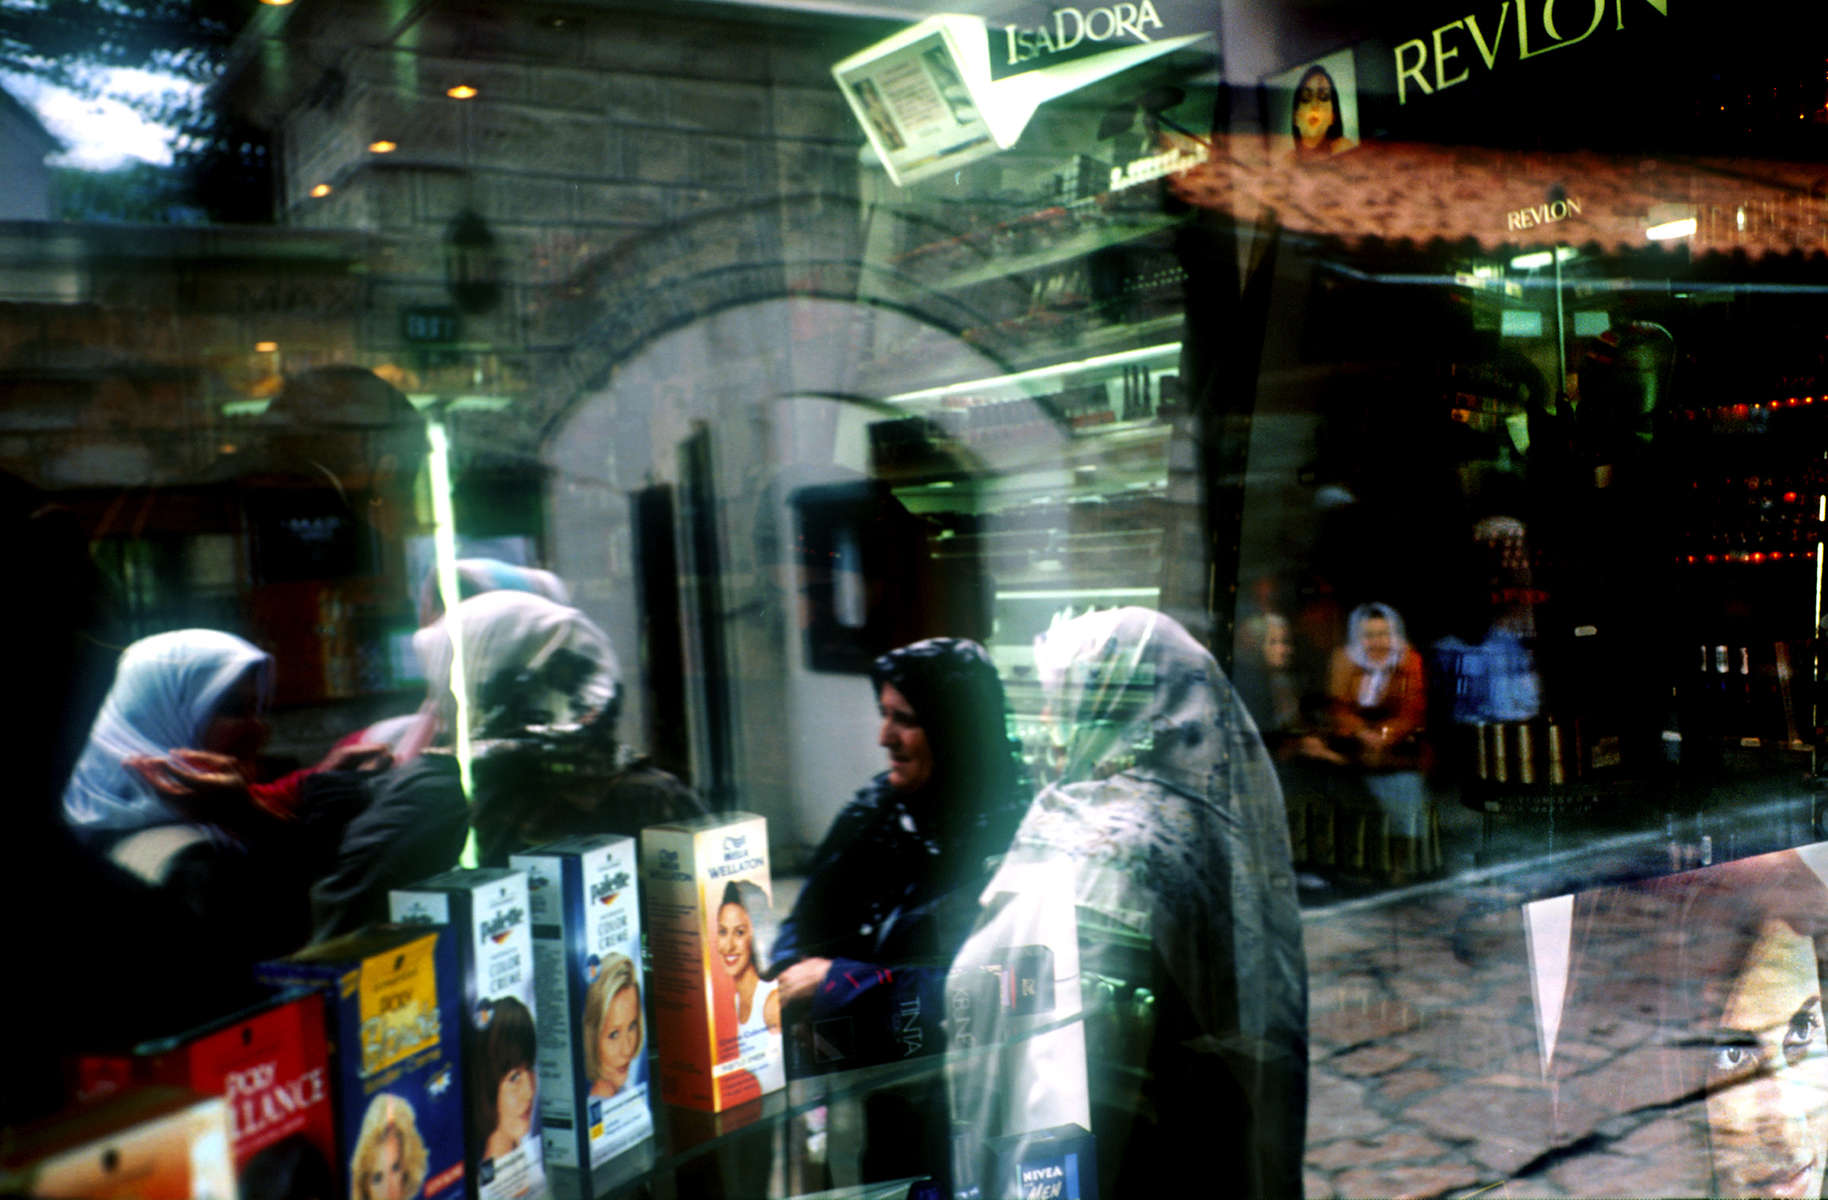 Window reflection, beauty store. April 2002.